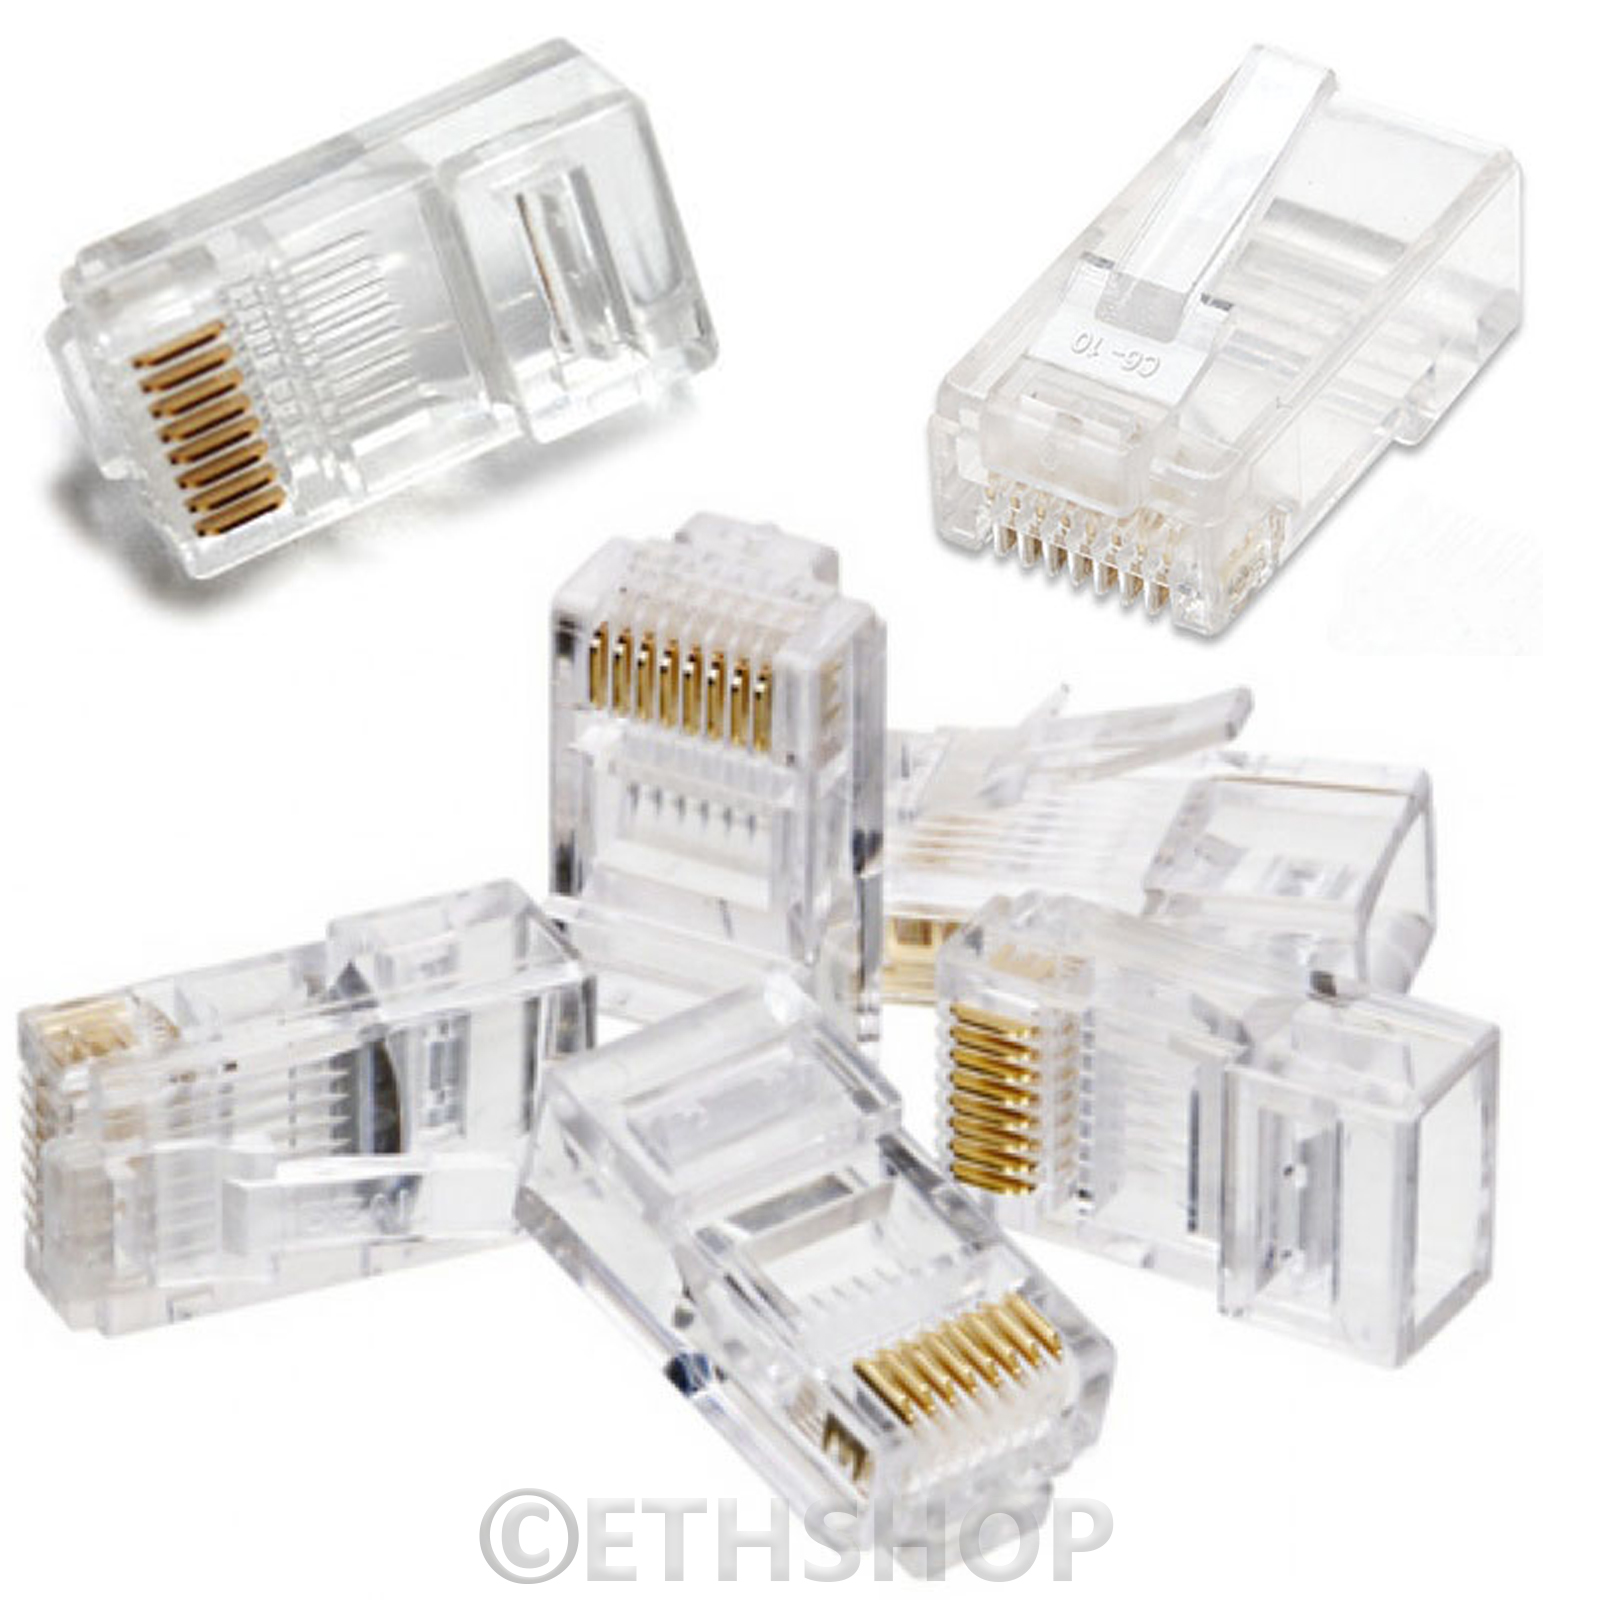 RJ45-Network-Lan-Cat5e-6e-Gigabit-Bulk-Keystone-Cable-Lead-30M-40m-50M-100M-150M